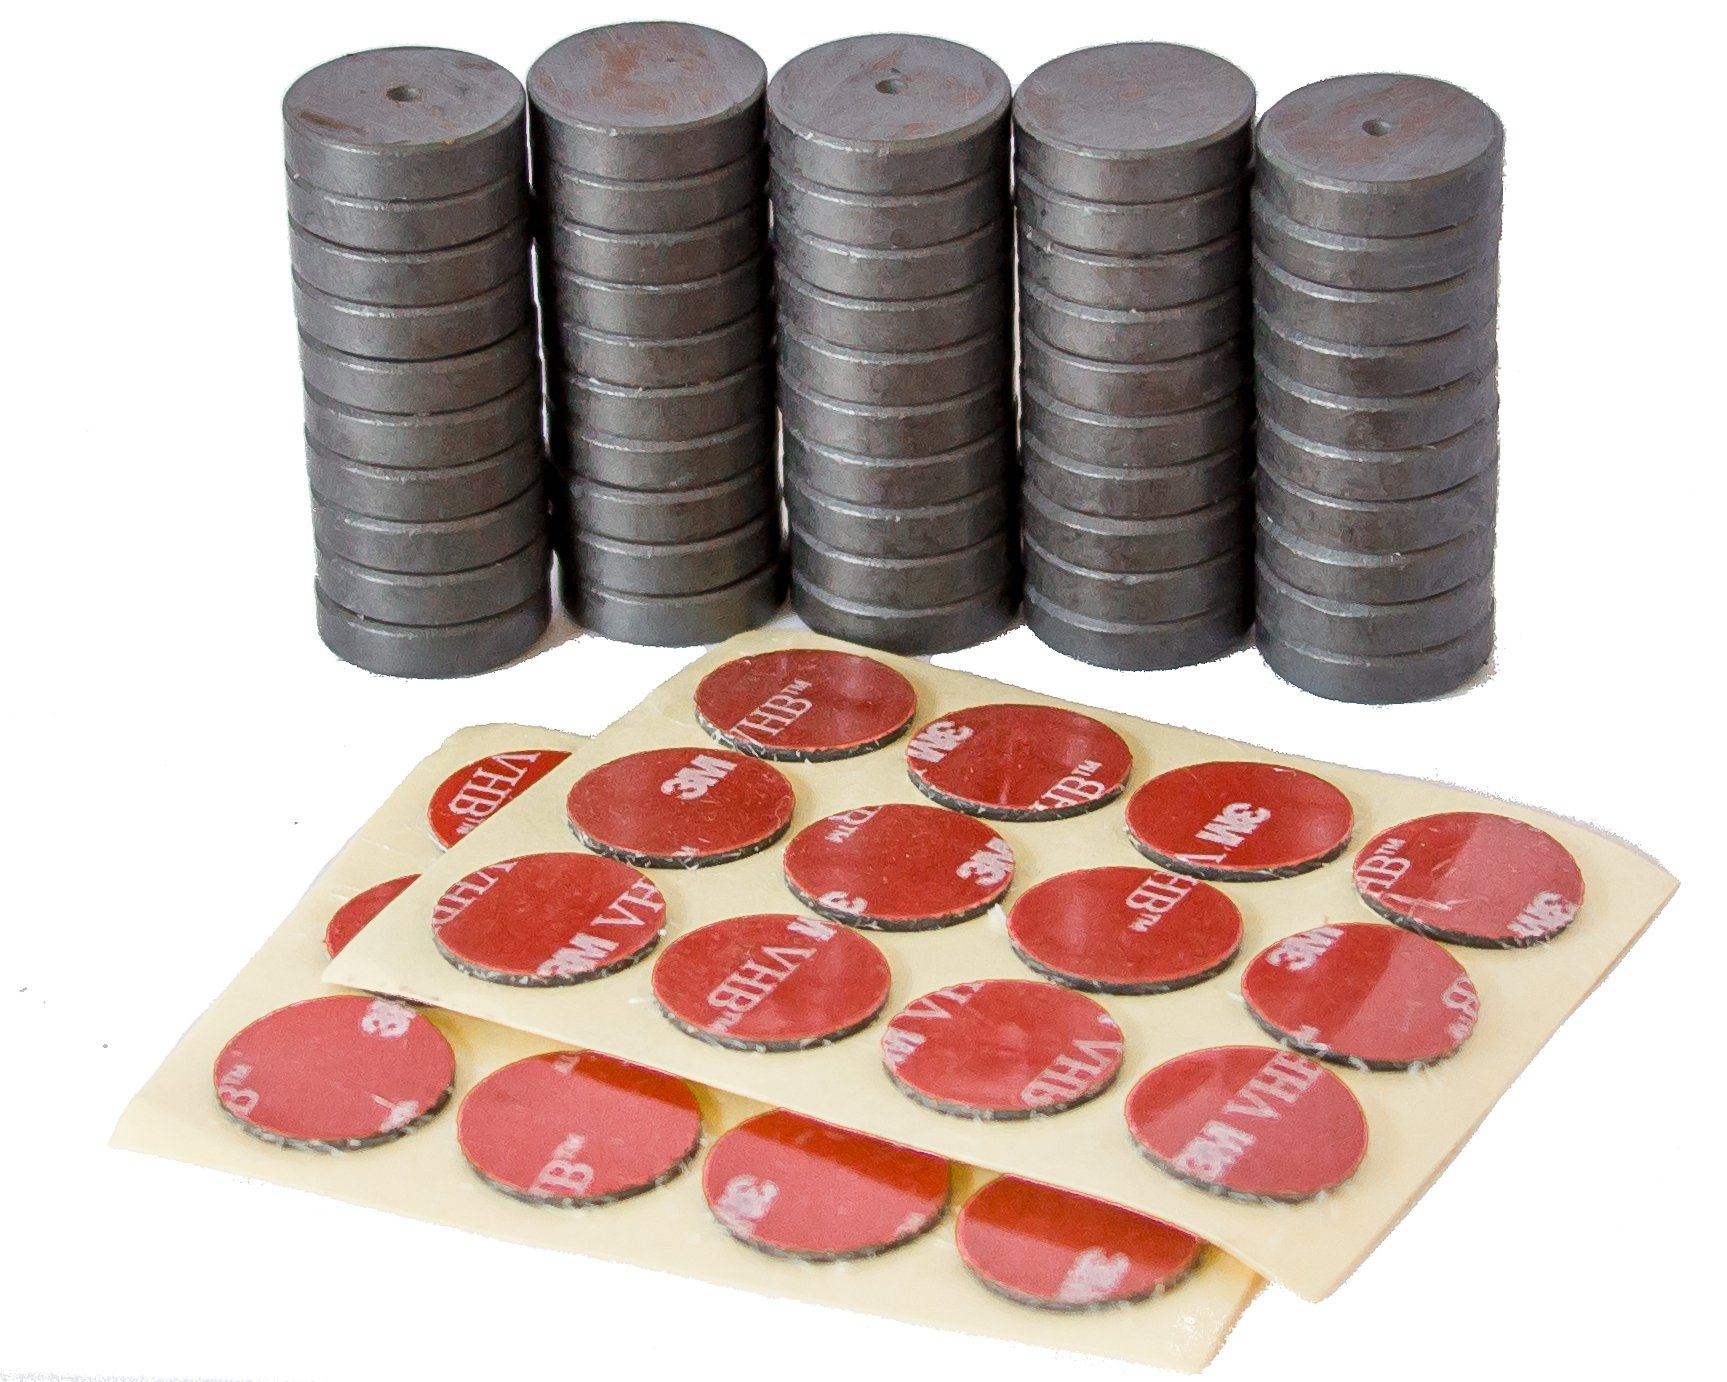 Tuff Magnets, Super Strength Grade 8, comes with 24 3M Adhesive Dots Set, Fridge, Craft, Hobby, School, Heavy Duty. Round Disc, 3/4 inch, 50 pieces/box